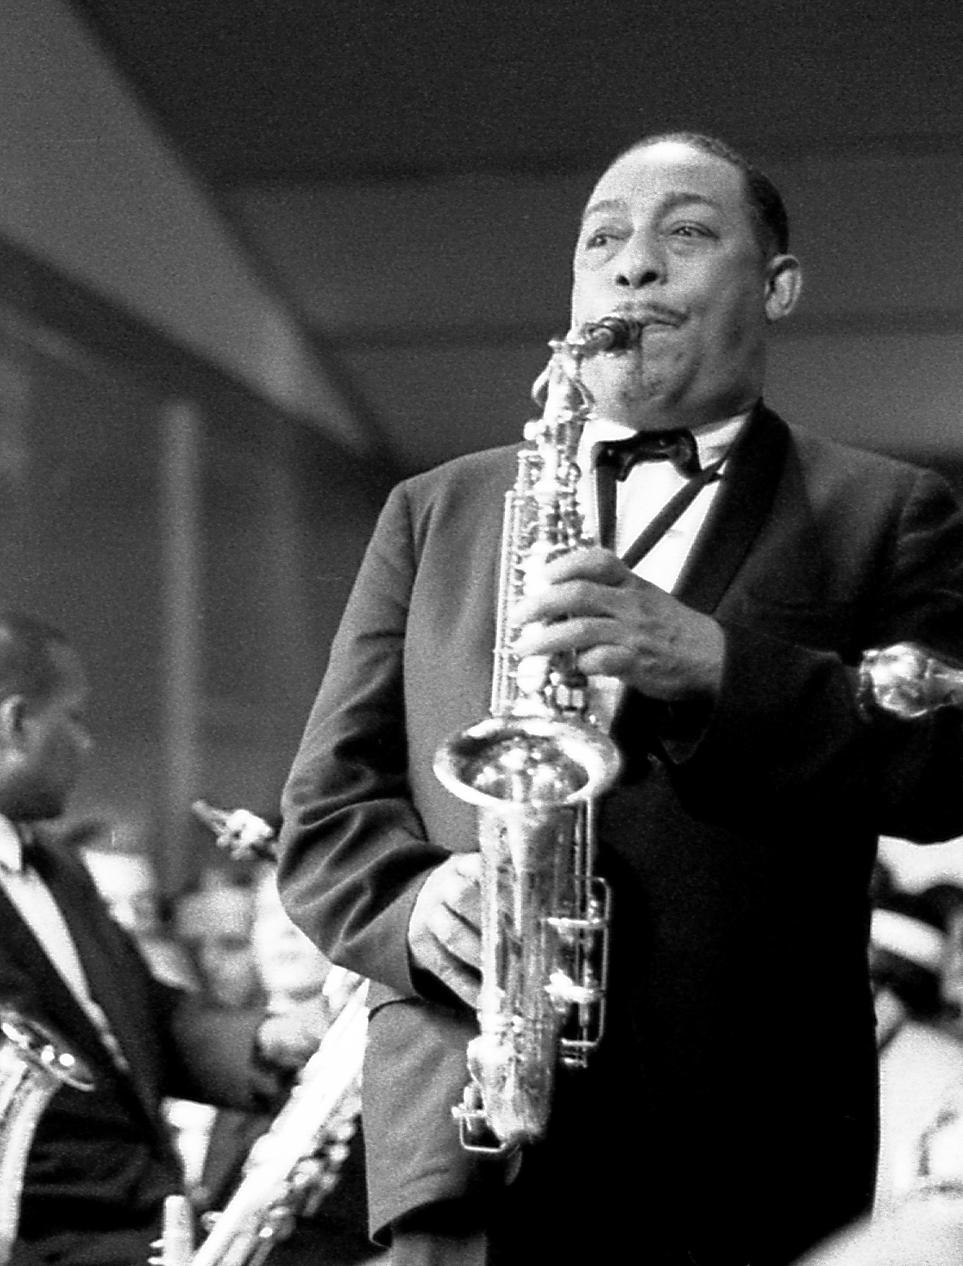 Johnny Hodges 1345662 W additionally Watch in addition Boutique Digital Partition besides 2 furthermore Greatest Jazz Pianists. on oscar peterson jazz piano